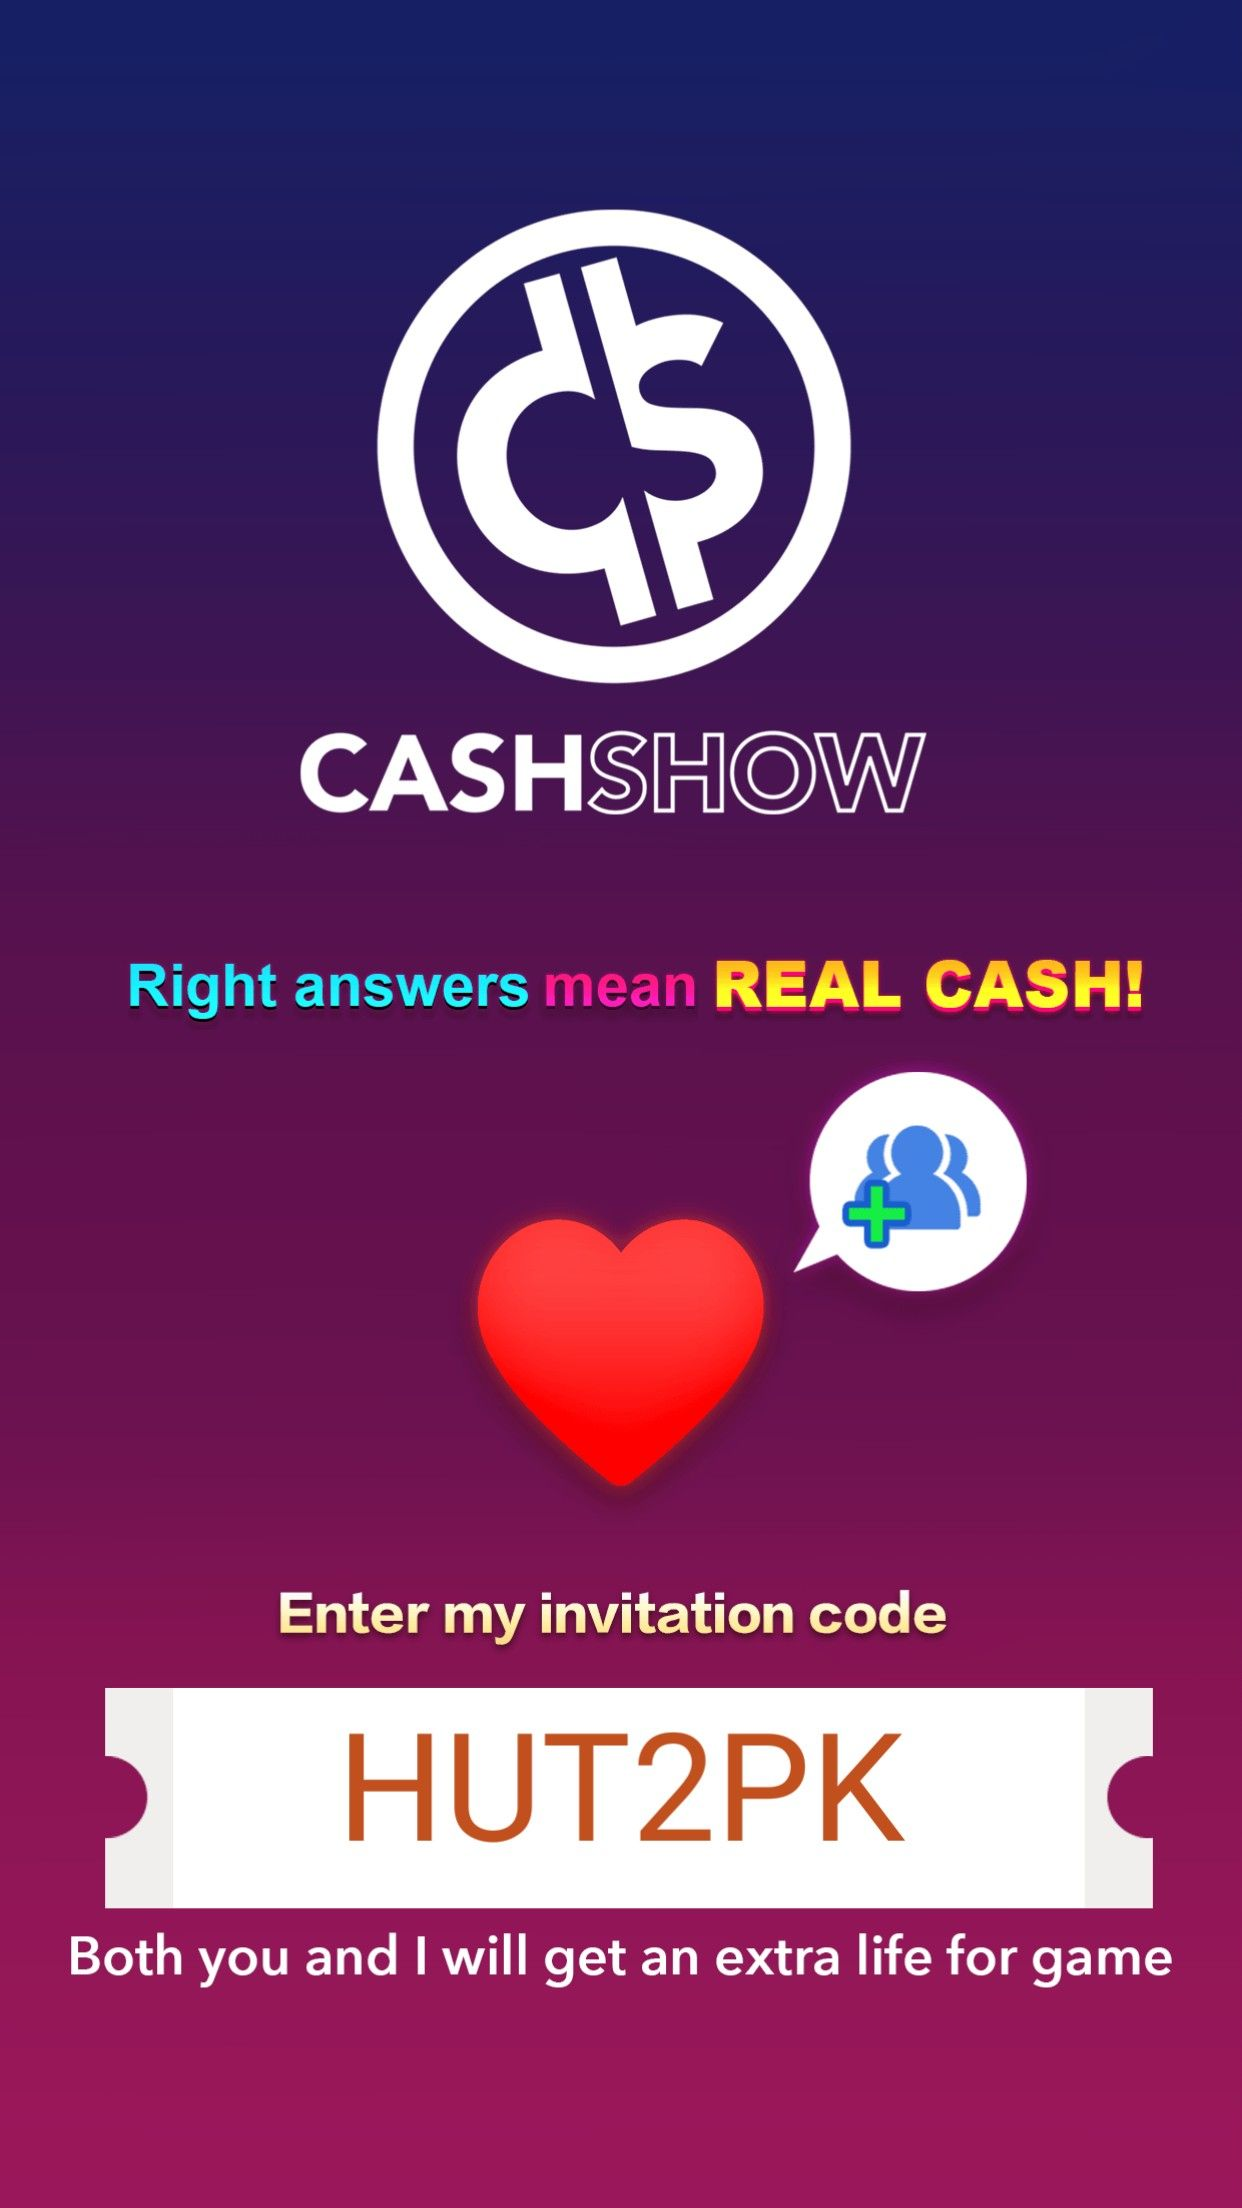 Win money playing games paypal accepted